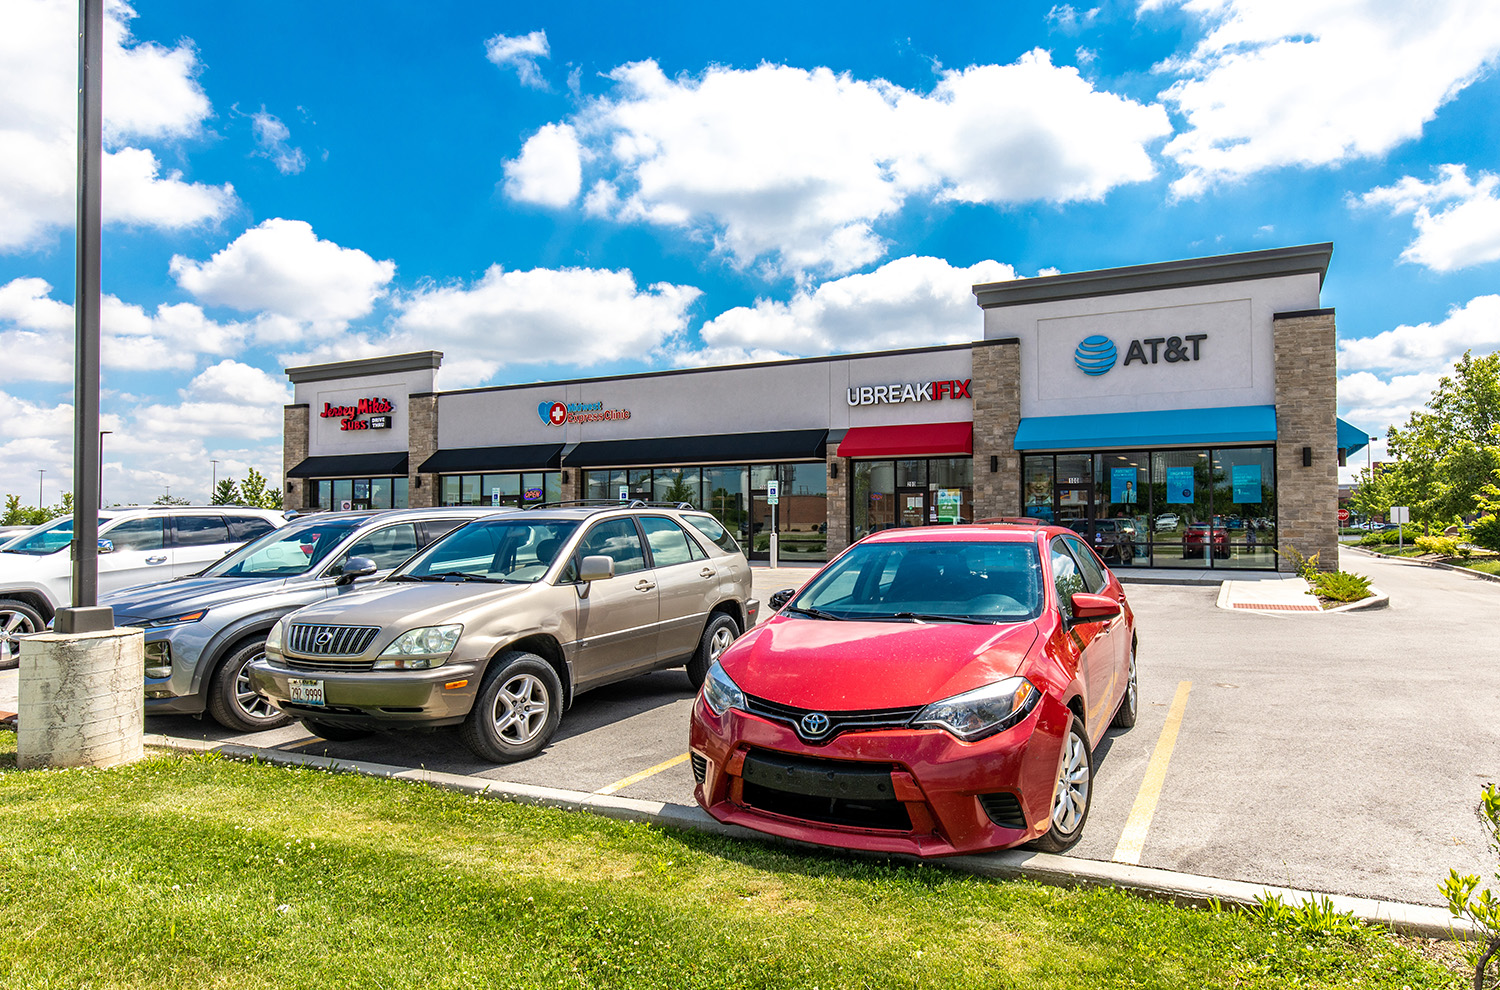 Hanley Investment Group Arranges Sale of Chicagoland Multi-Tenant Retail Pad at Walmart-Anchored Center for $4.4 Million